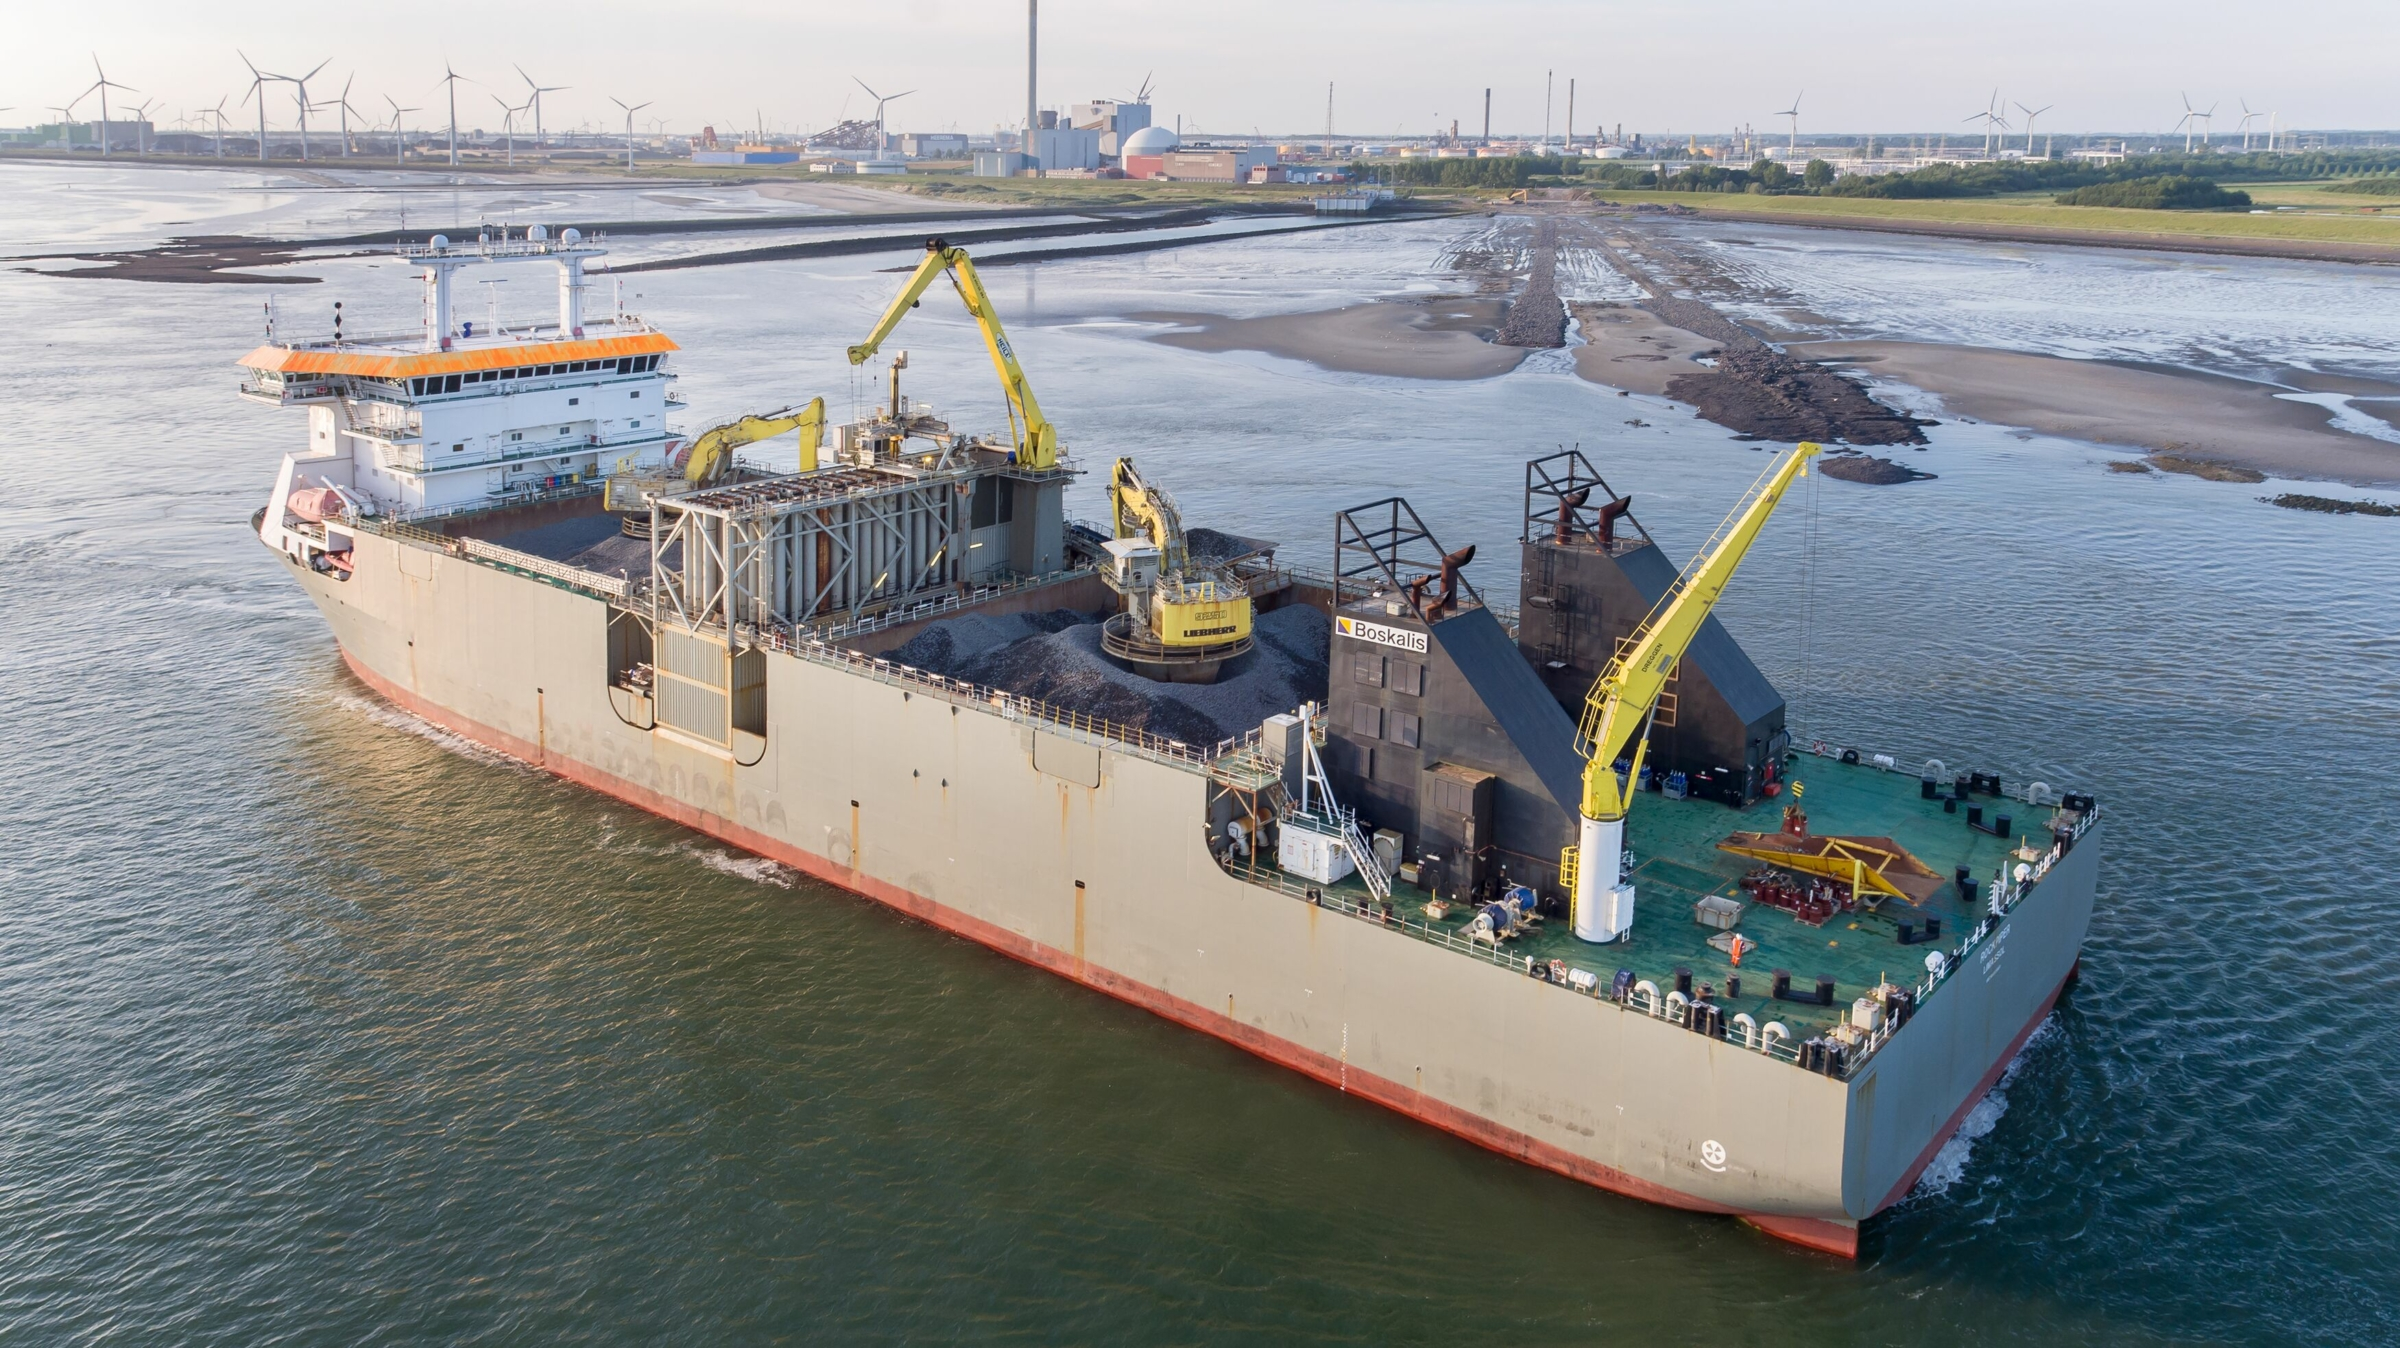 Consortium of Boskalis, Bouygues and Saipem selected for Fecamp Offshore Wind Farm foundations